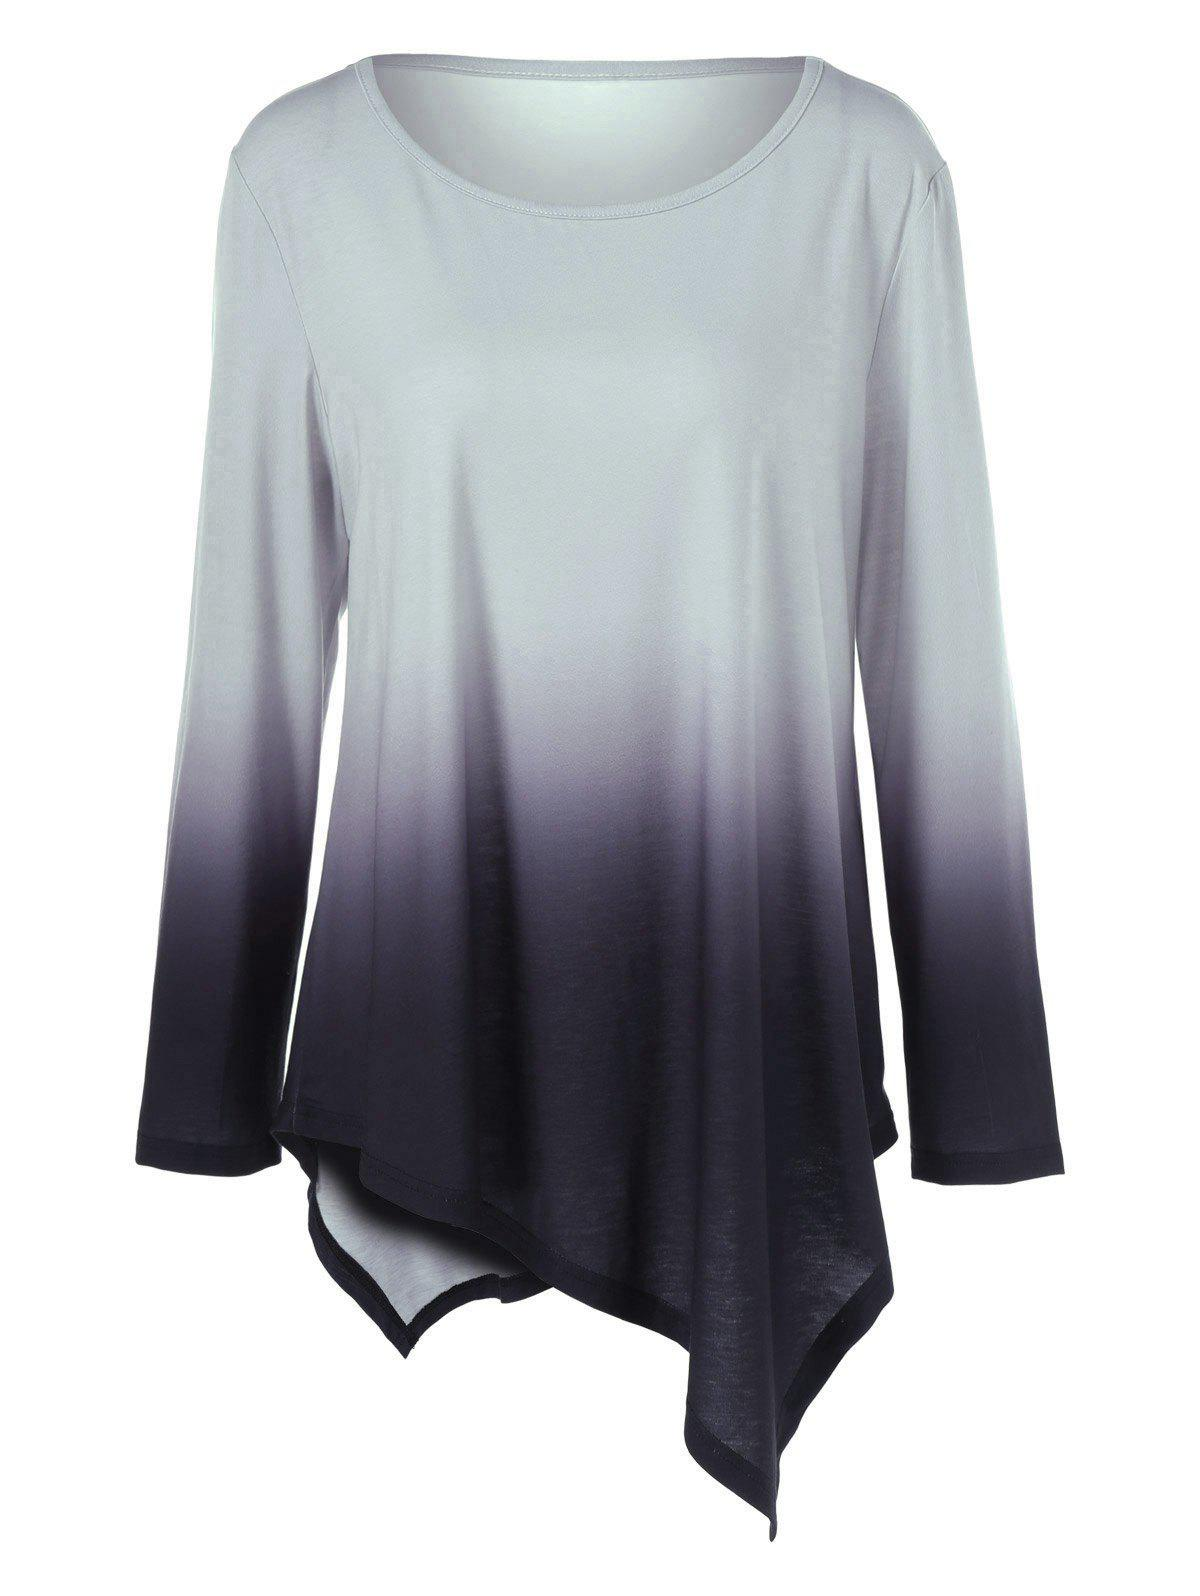 Plus Size Ombre Asymmetrical T-Shirt - BLACK/GREY 2XL